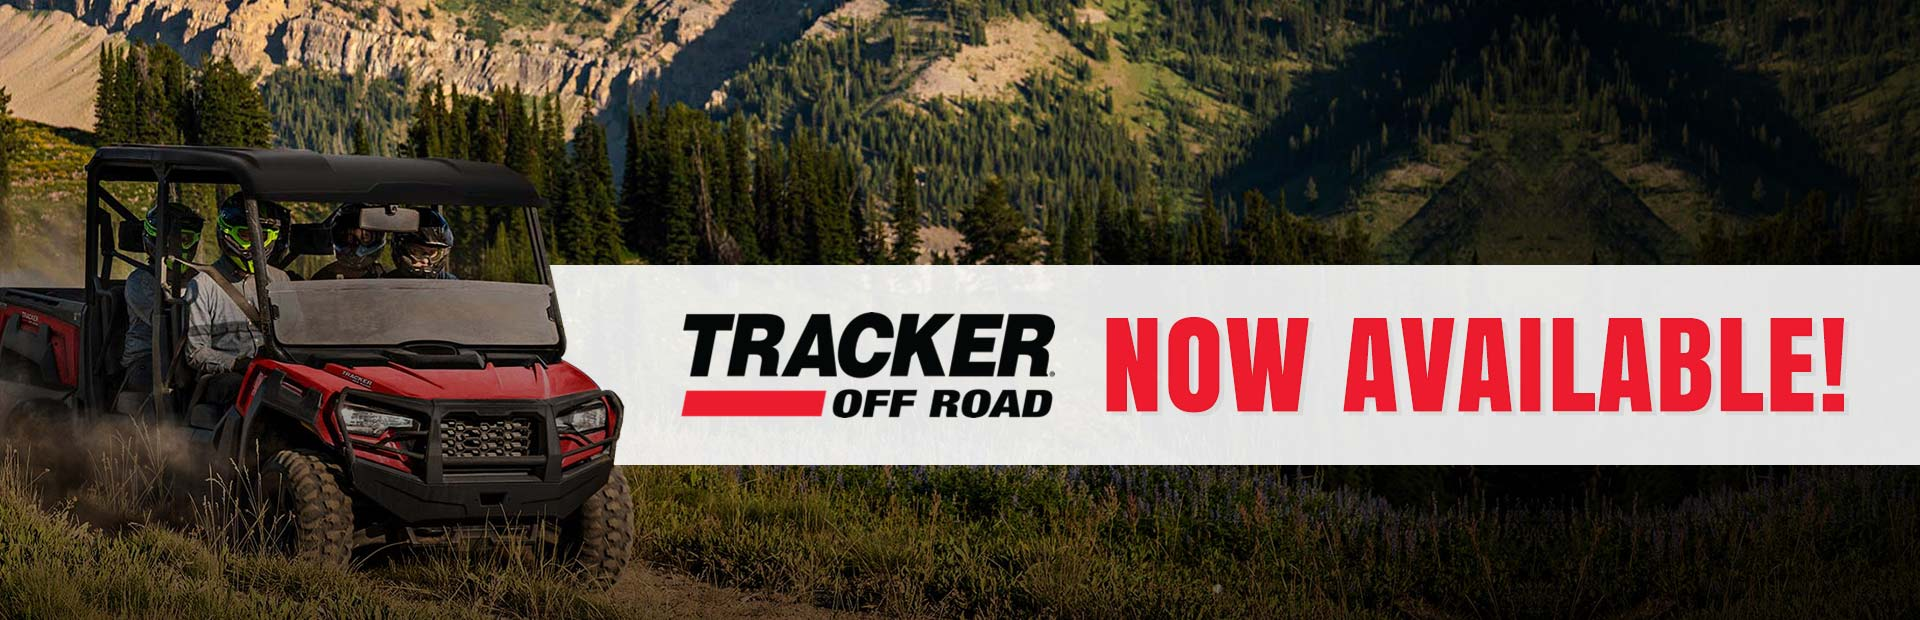 Tracker Off Road now available: Click here to see the models.